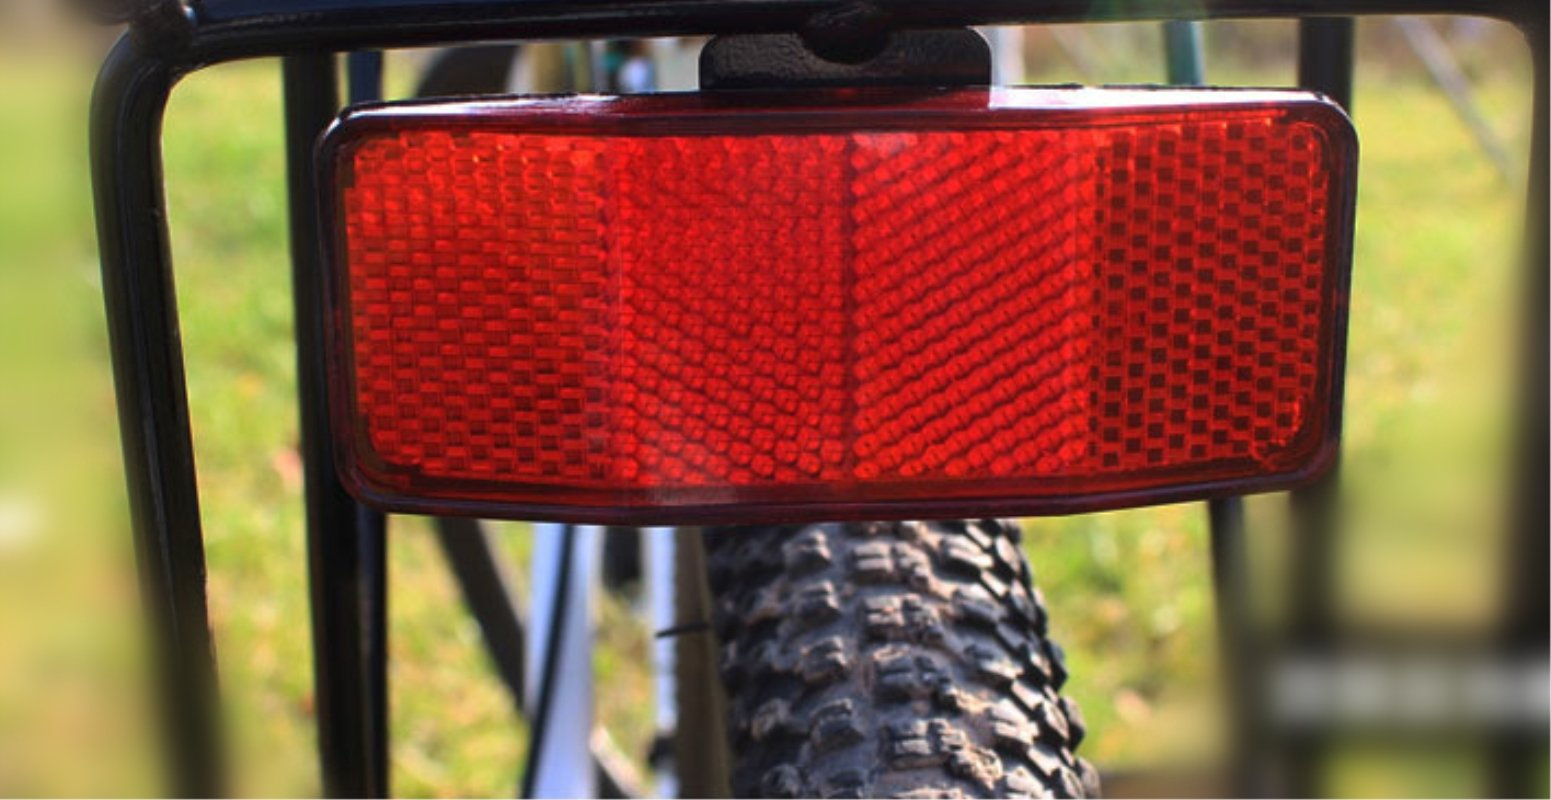 Bicycle Bike Safety Caution Warning Reflector Disc For Rear Pannier Racks Frame